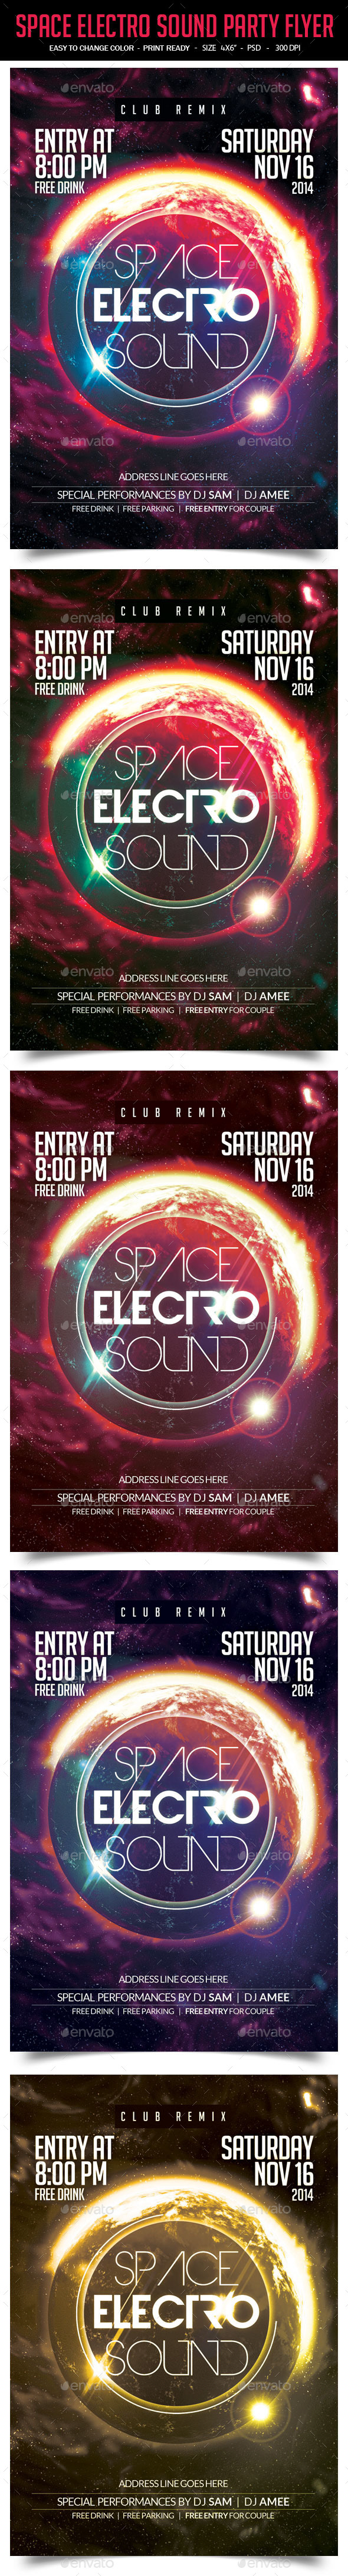 Space Electro Sound Party Flyer - Clubs & Parties Events